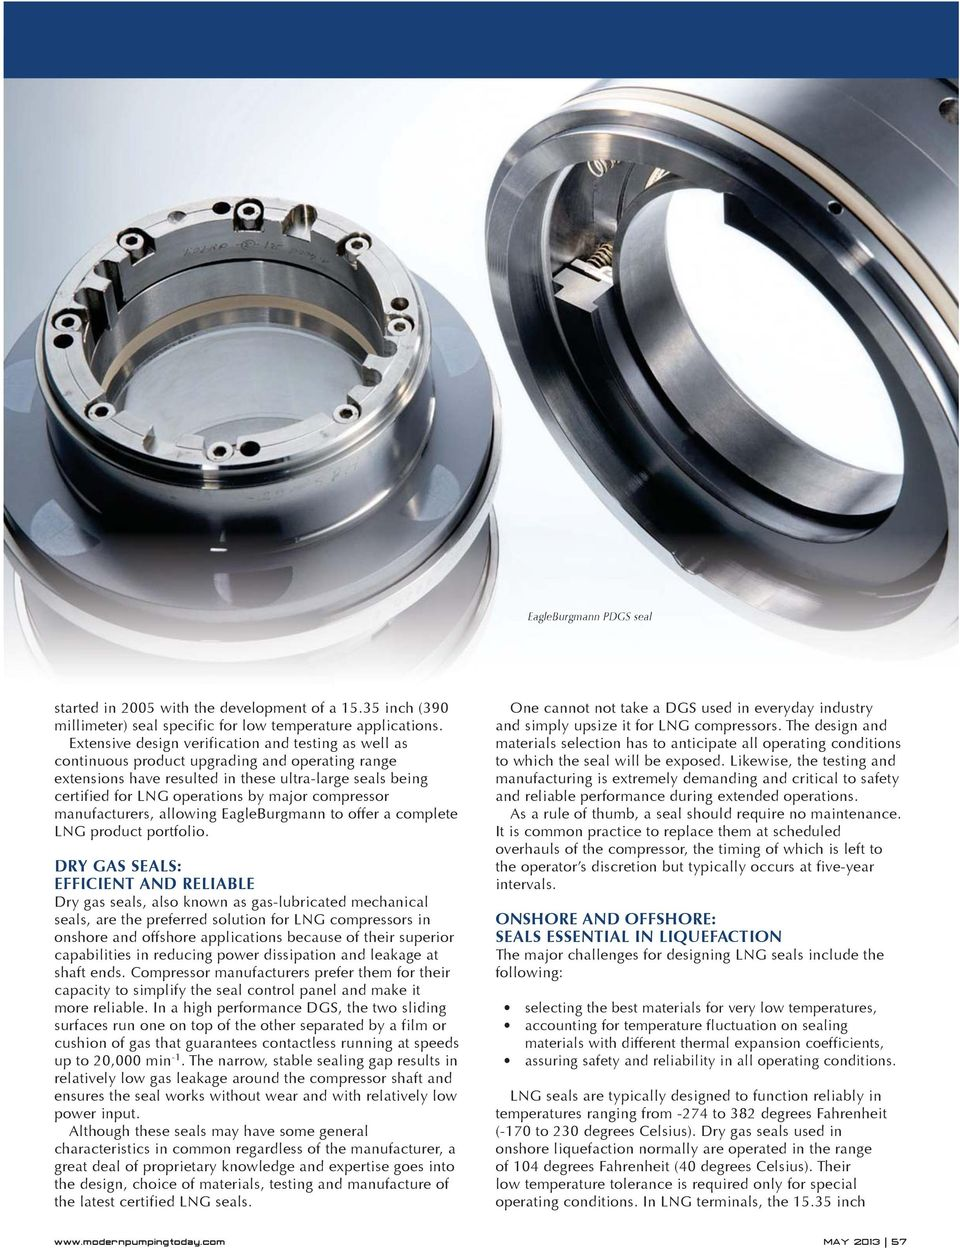 Dry Gas Seals for LNG Compressors - PDF